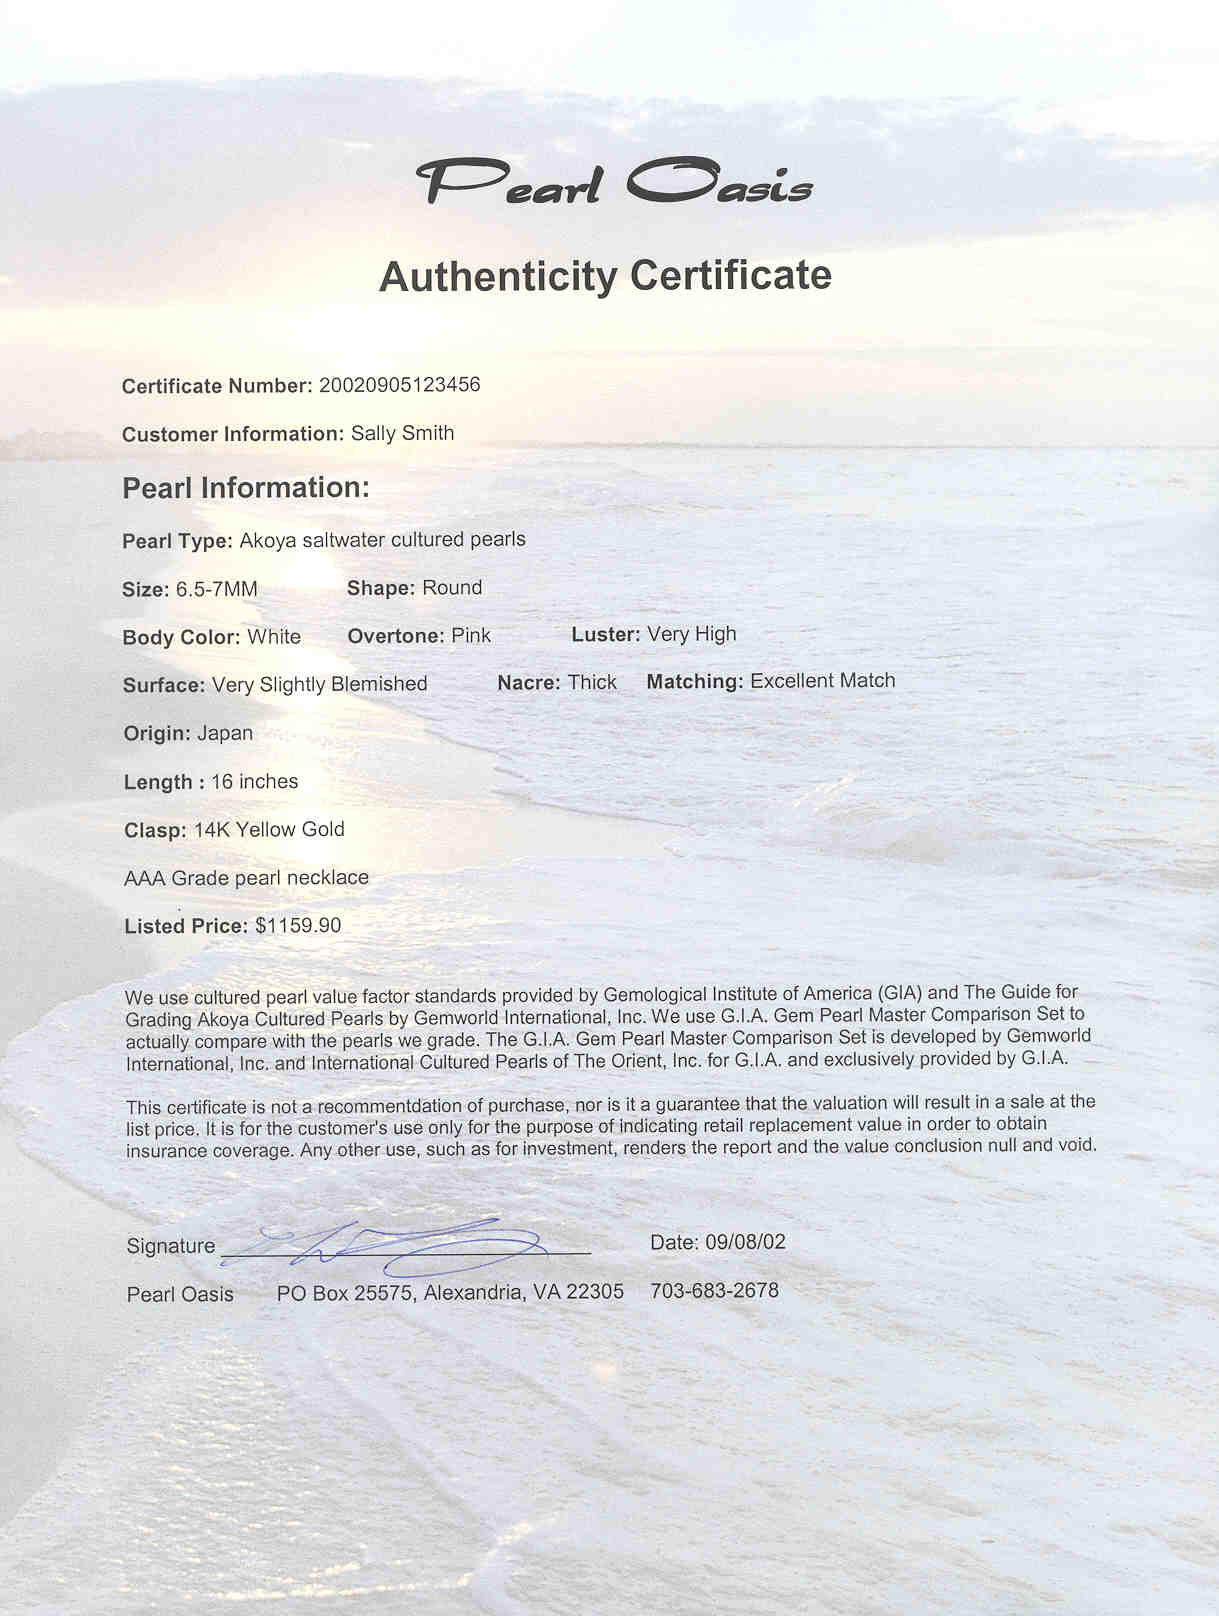 Pearl Oasis Authenticity Certificate